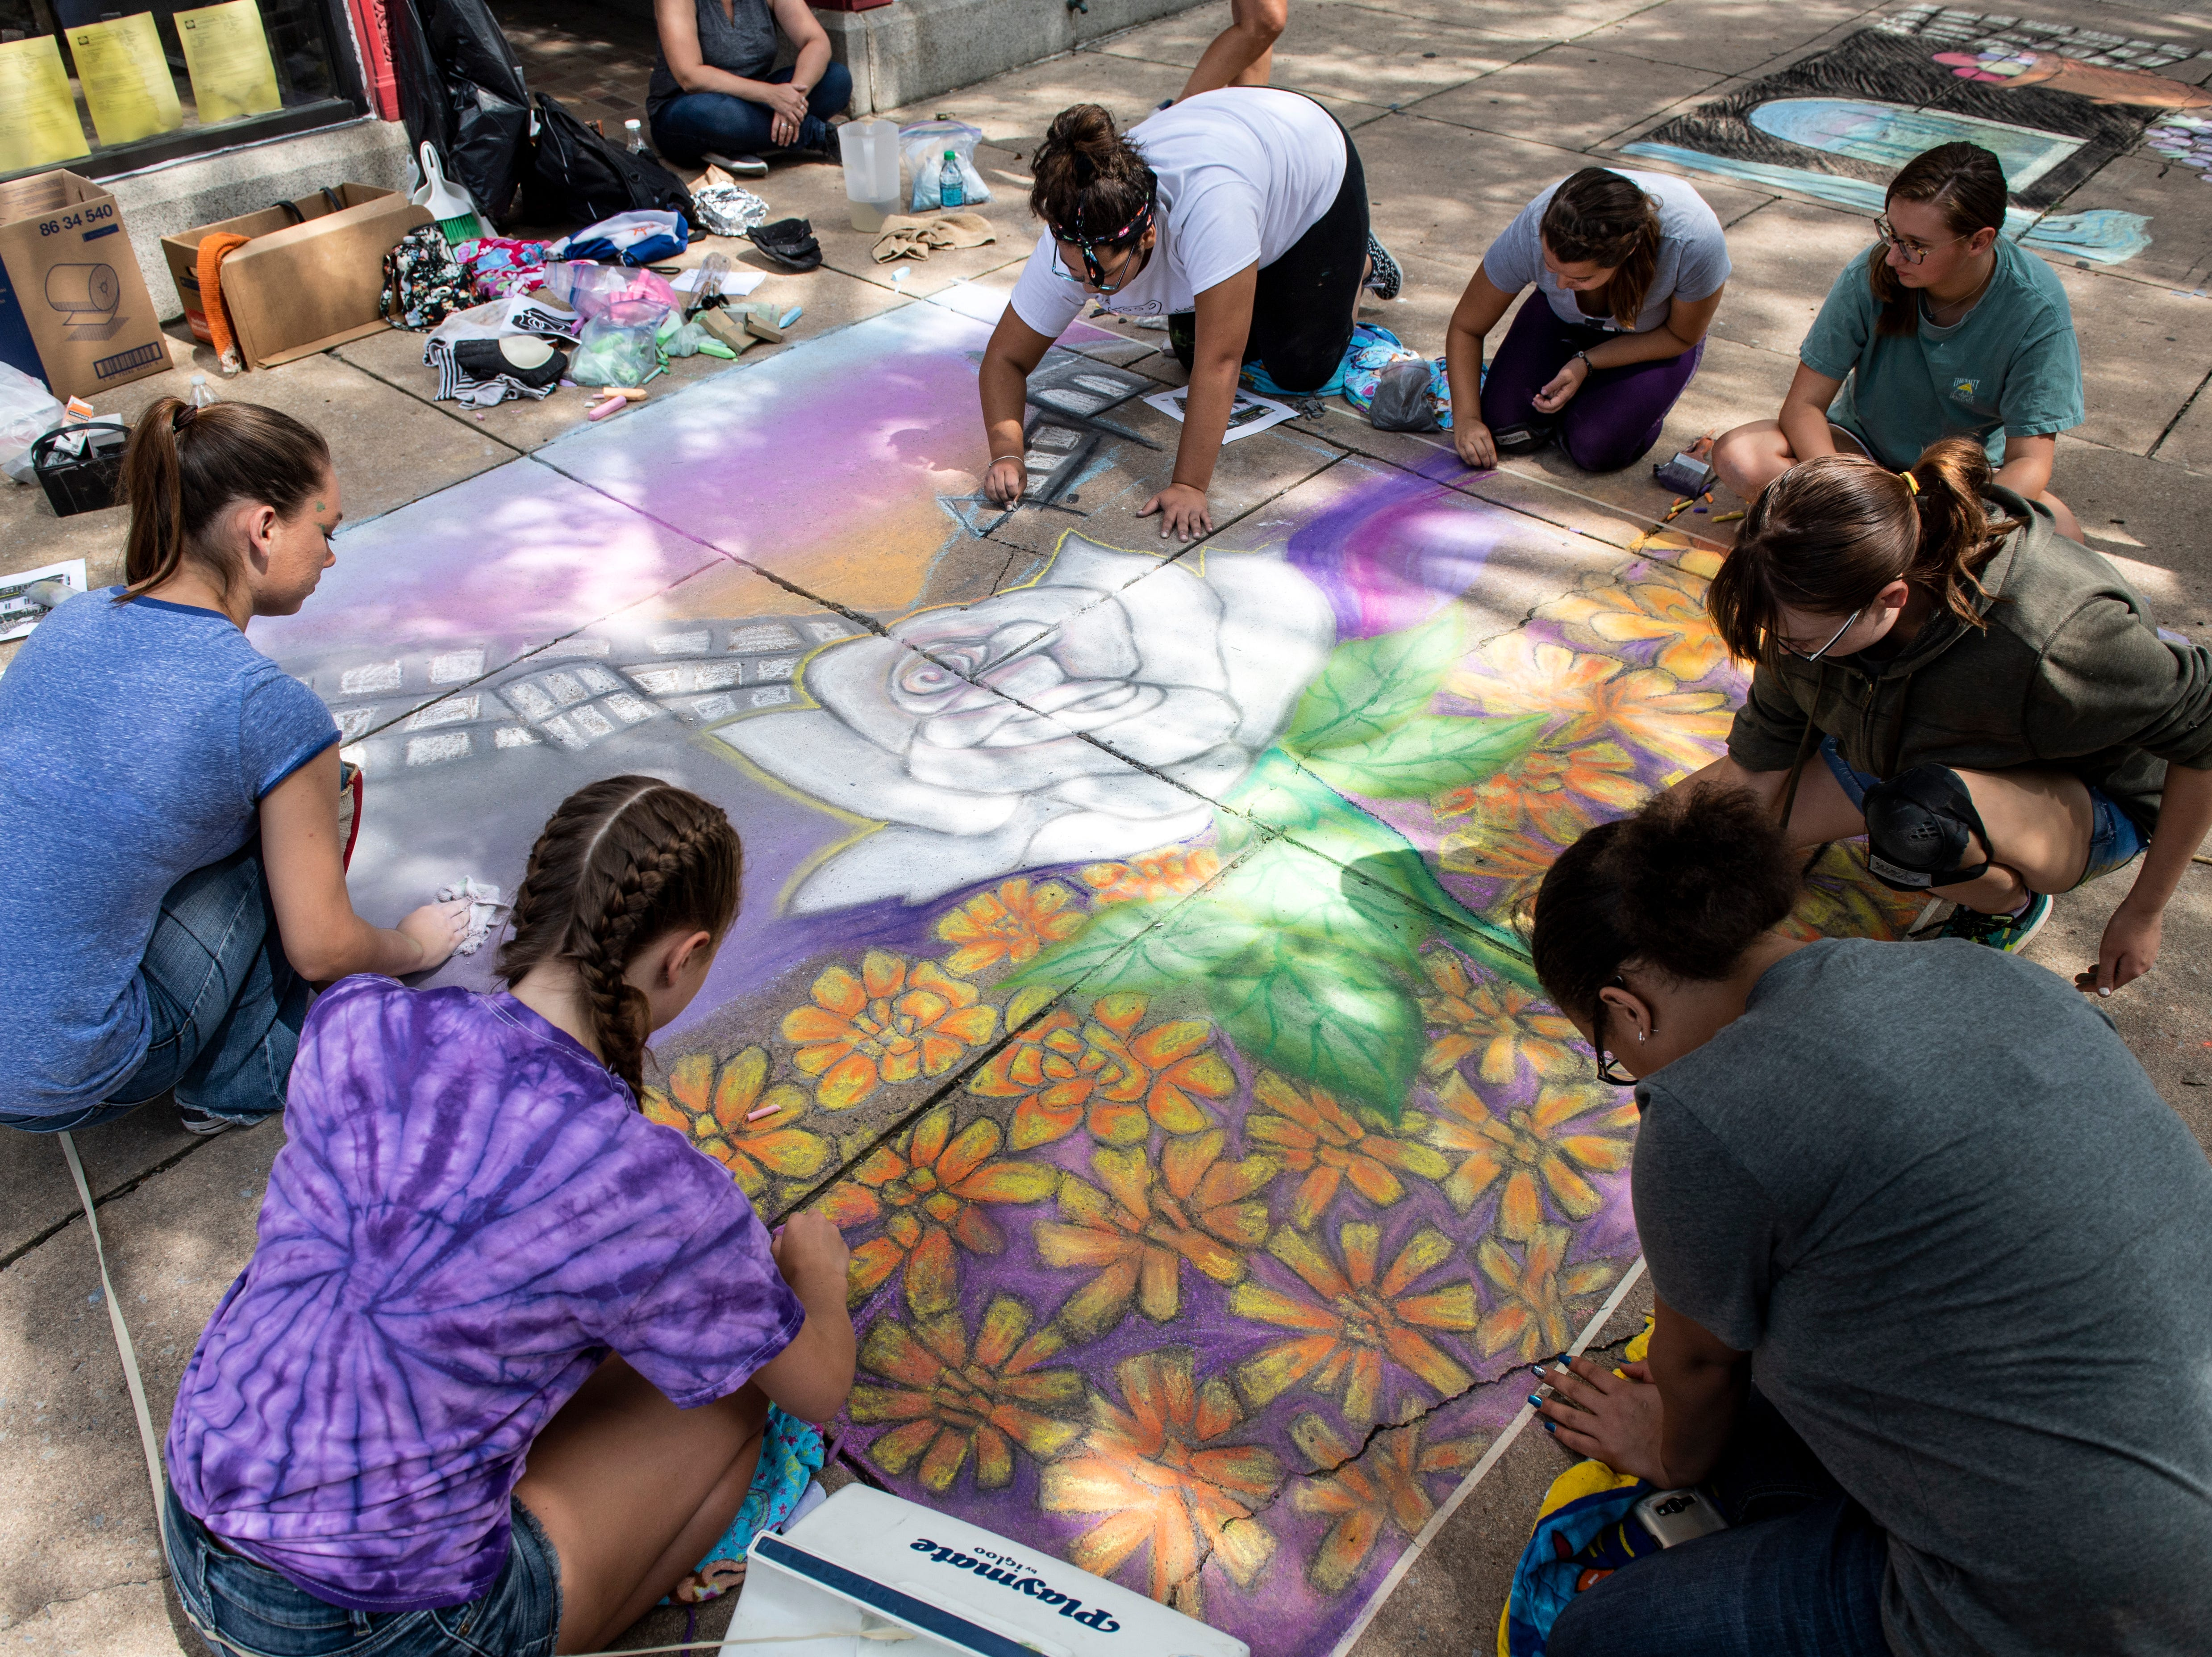 Briana Allen, from left, Lilly Haugh, Alexis Trinidad, Abigail Waples, Katie Mummert, Savannah Weaver and Jen Vega, all Northeastern art students, part of the National Art Honor Society, work on a chalk walk piece for the competition, Saturday, Aug. 25, 2018. The art festival continues through Sunday, hosting over 100 artists along the Codorus Creek.